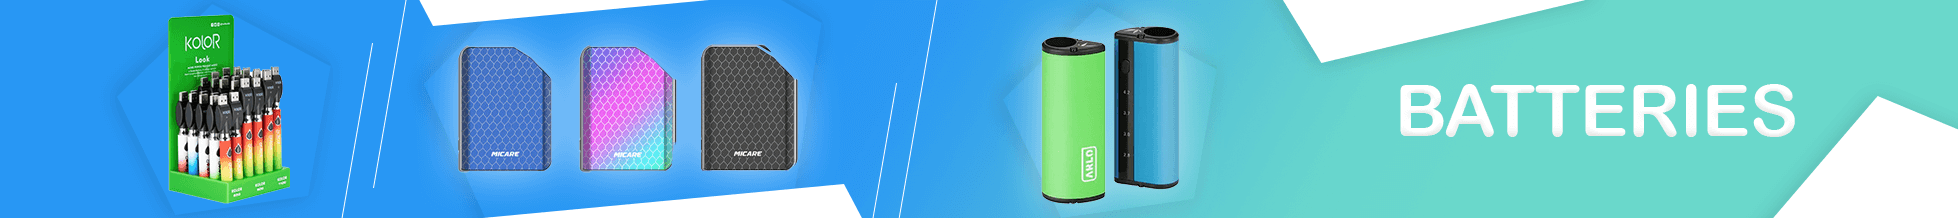 batteries-category-banner.png